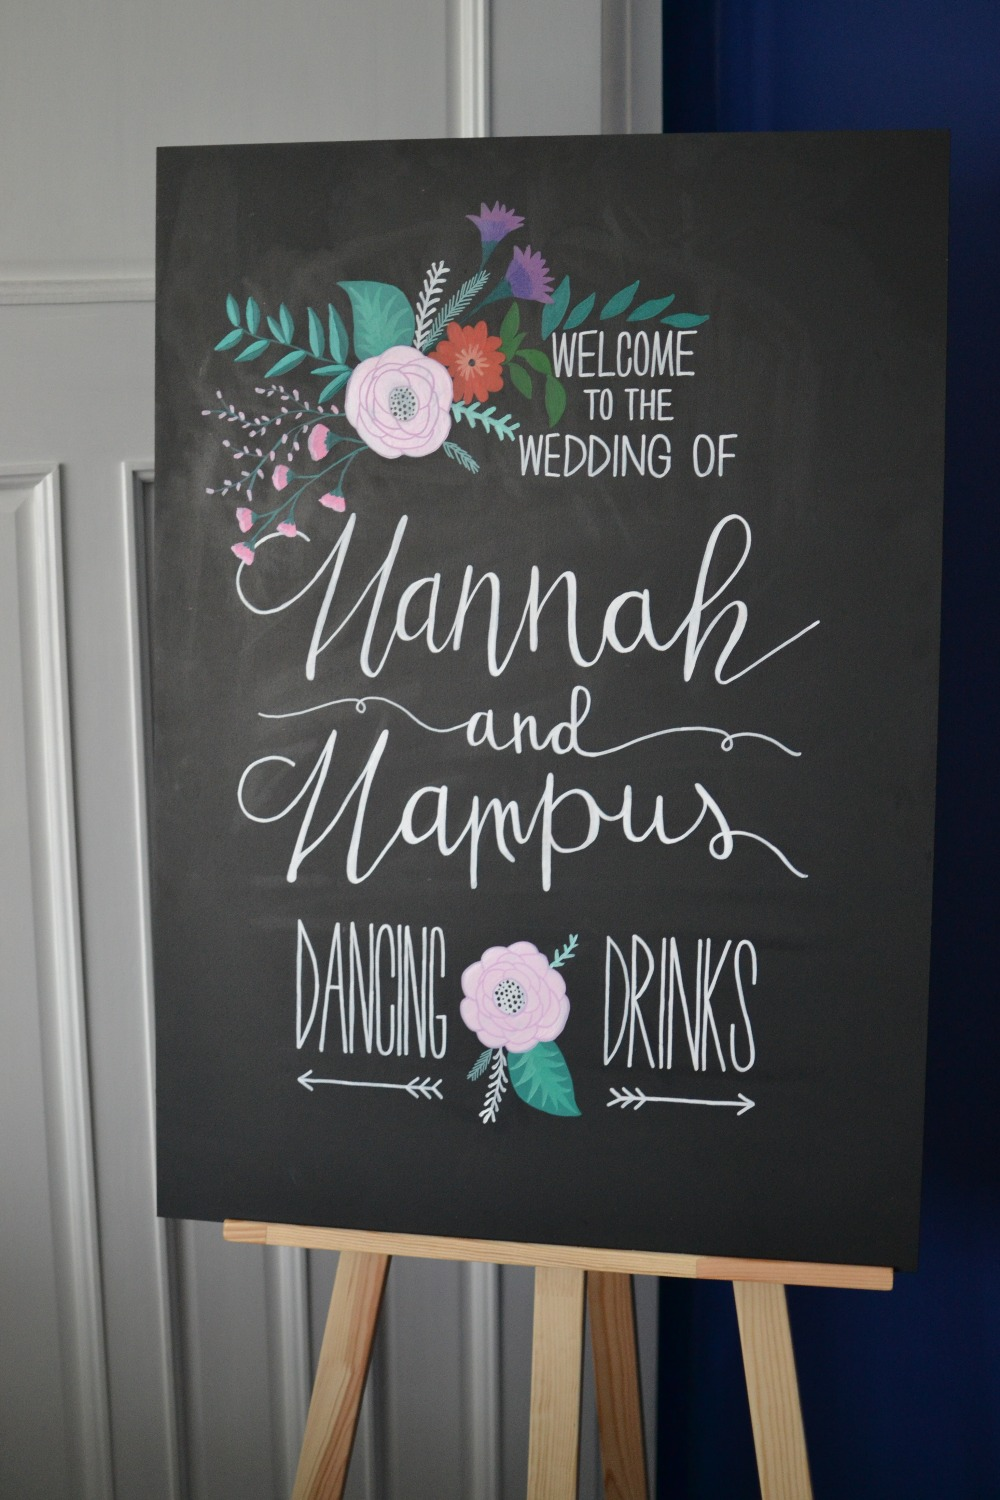 Wedding Chalkboard Signs - Hannah & Hampus (47)_edited